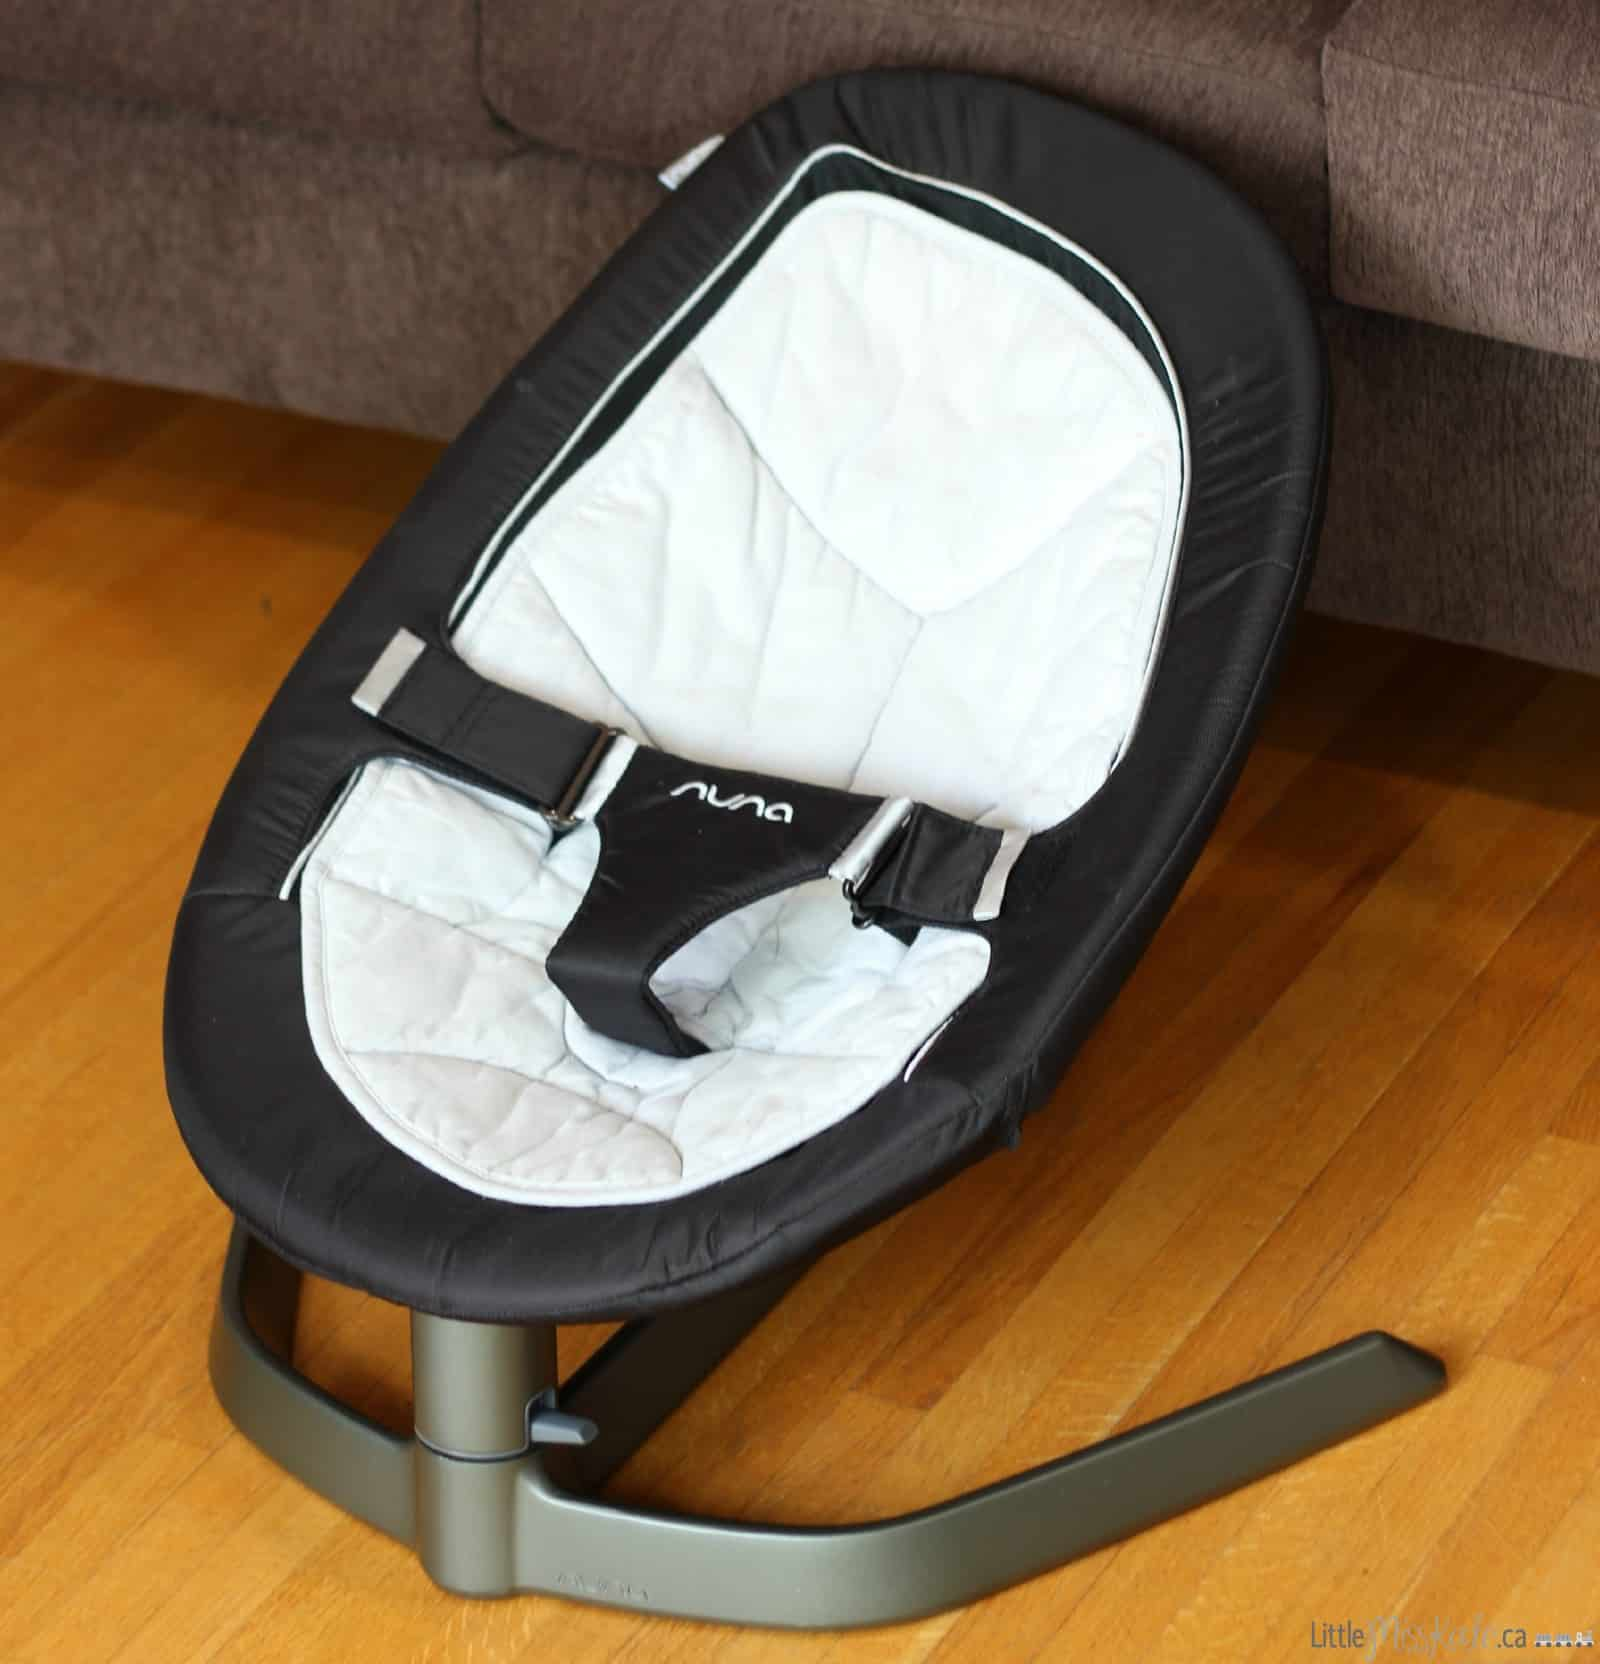 nuna leaf baby seat swing review & Baby Gear That Last Longer Then The Baby Stage: Nuna Leaf Review ...